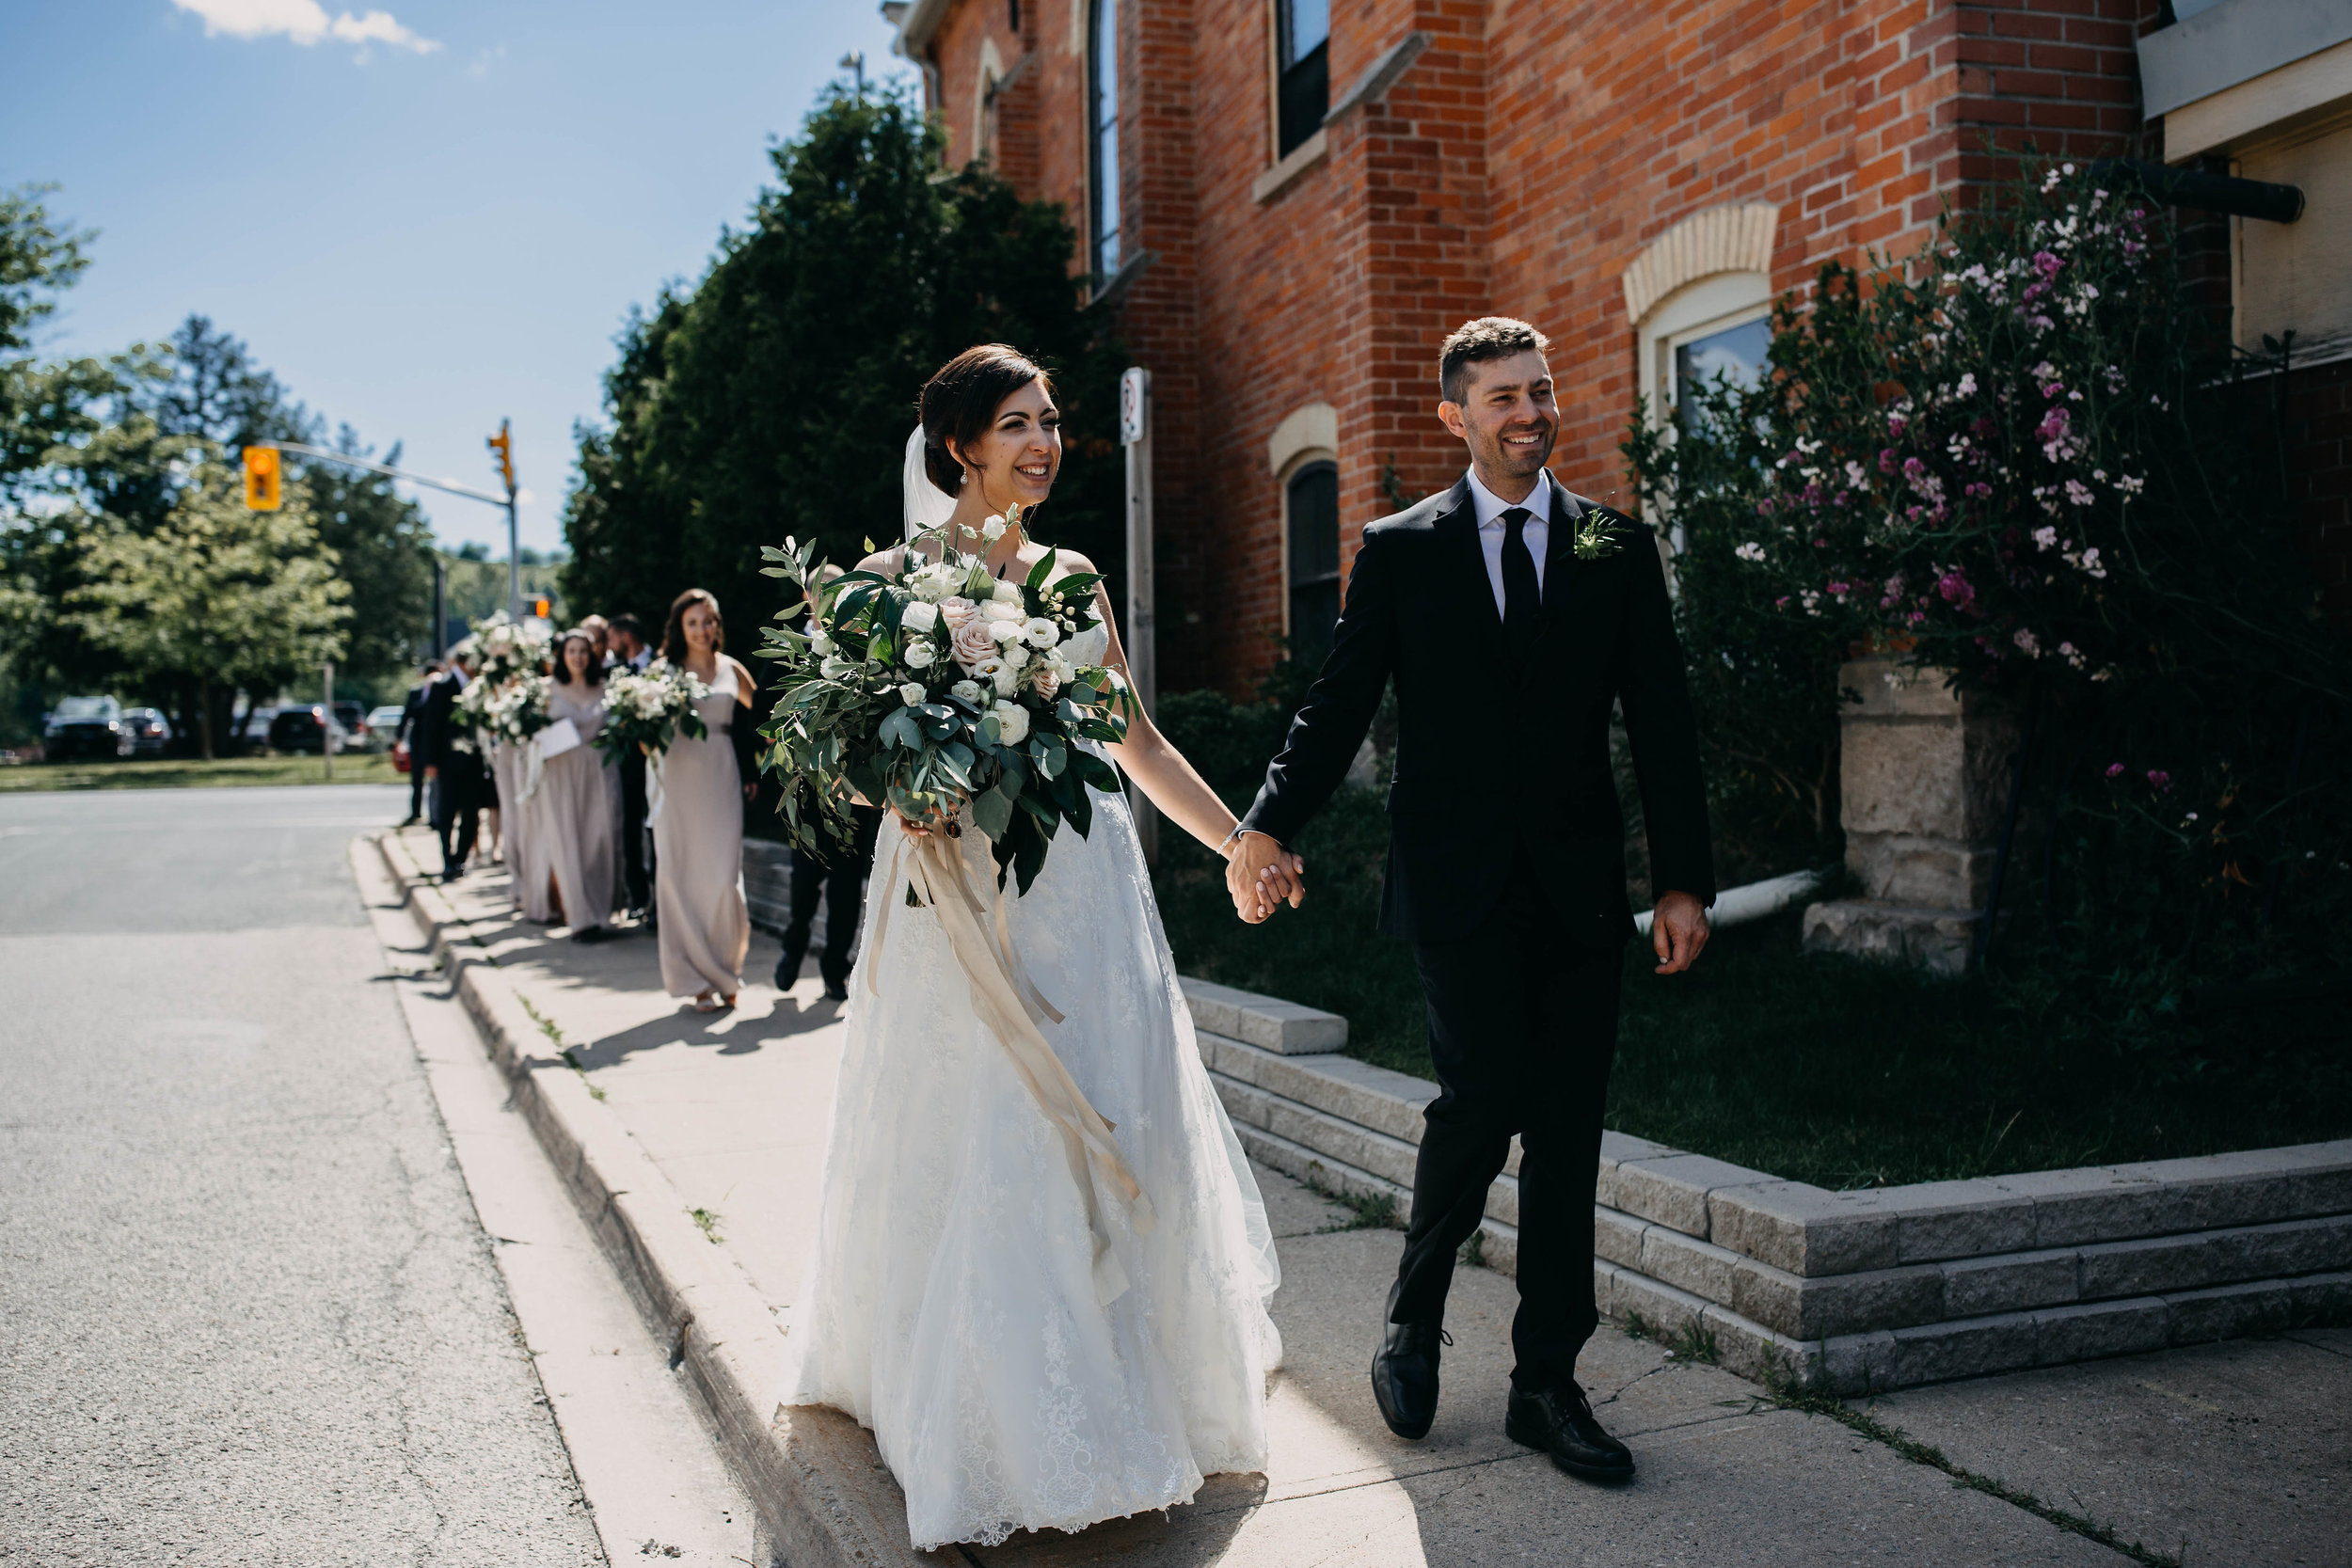 Select a Package - We can customize a package depends of your needs. Intimate weddings and destination wedding packages are available upon request.